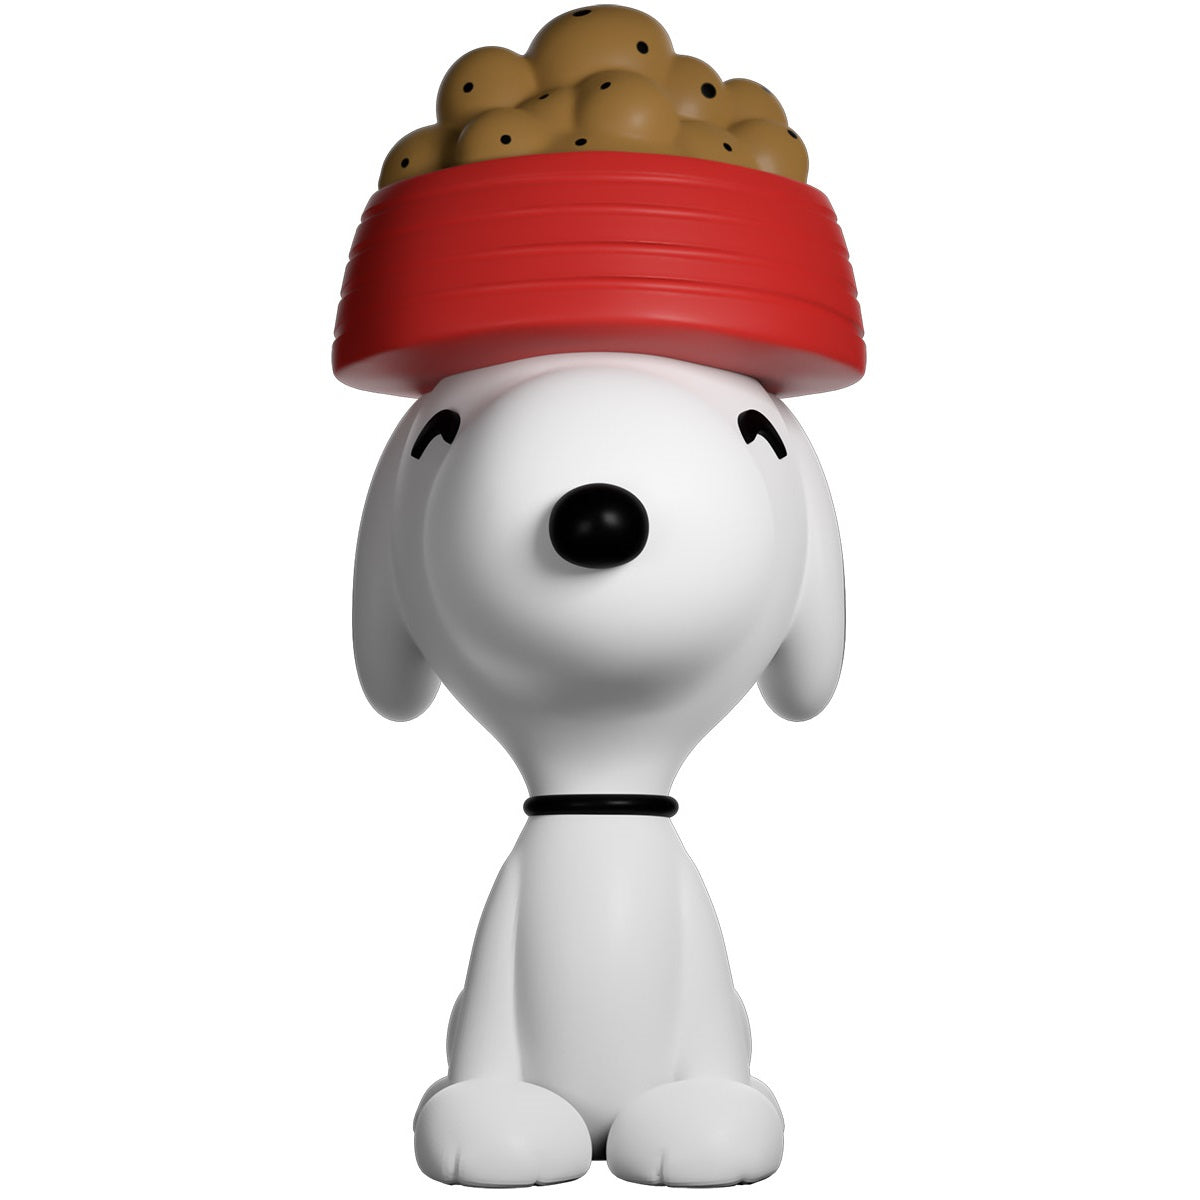 Youtooz Peanuts Vinyl Figure Snoopy with Dog Bowl [2] - Fugitive Toys